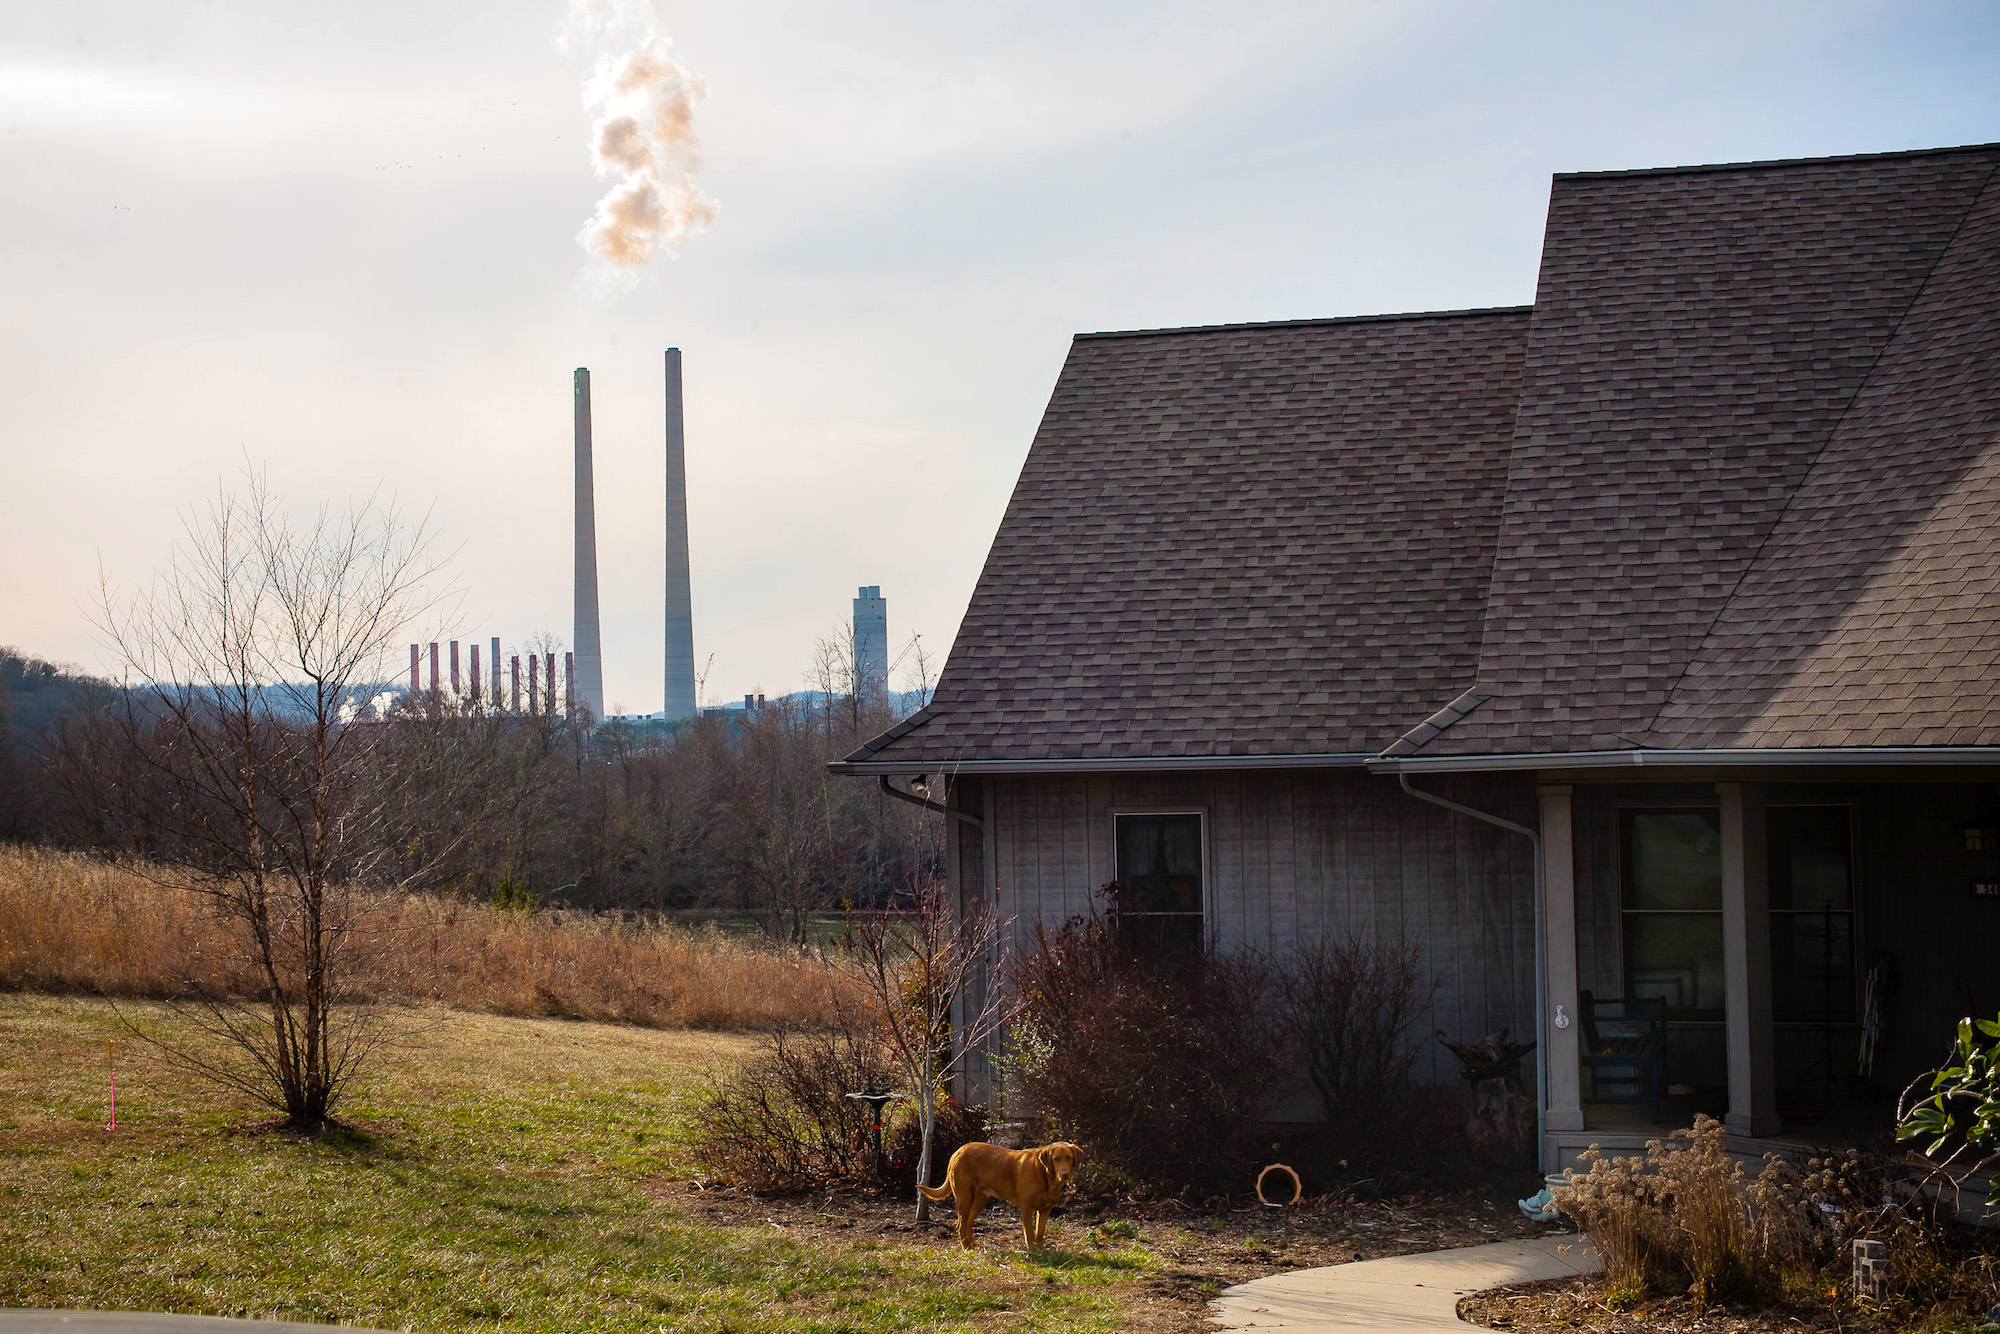 a photo of a house with a dog outside and the TVA plant in the distance